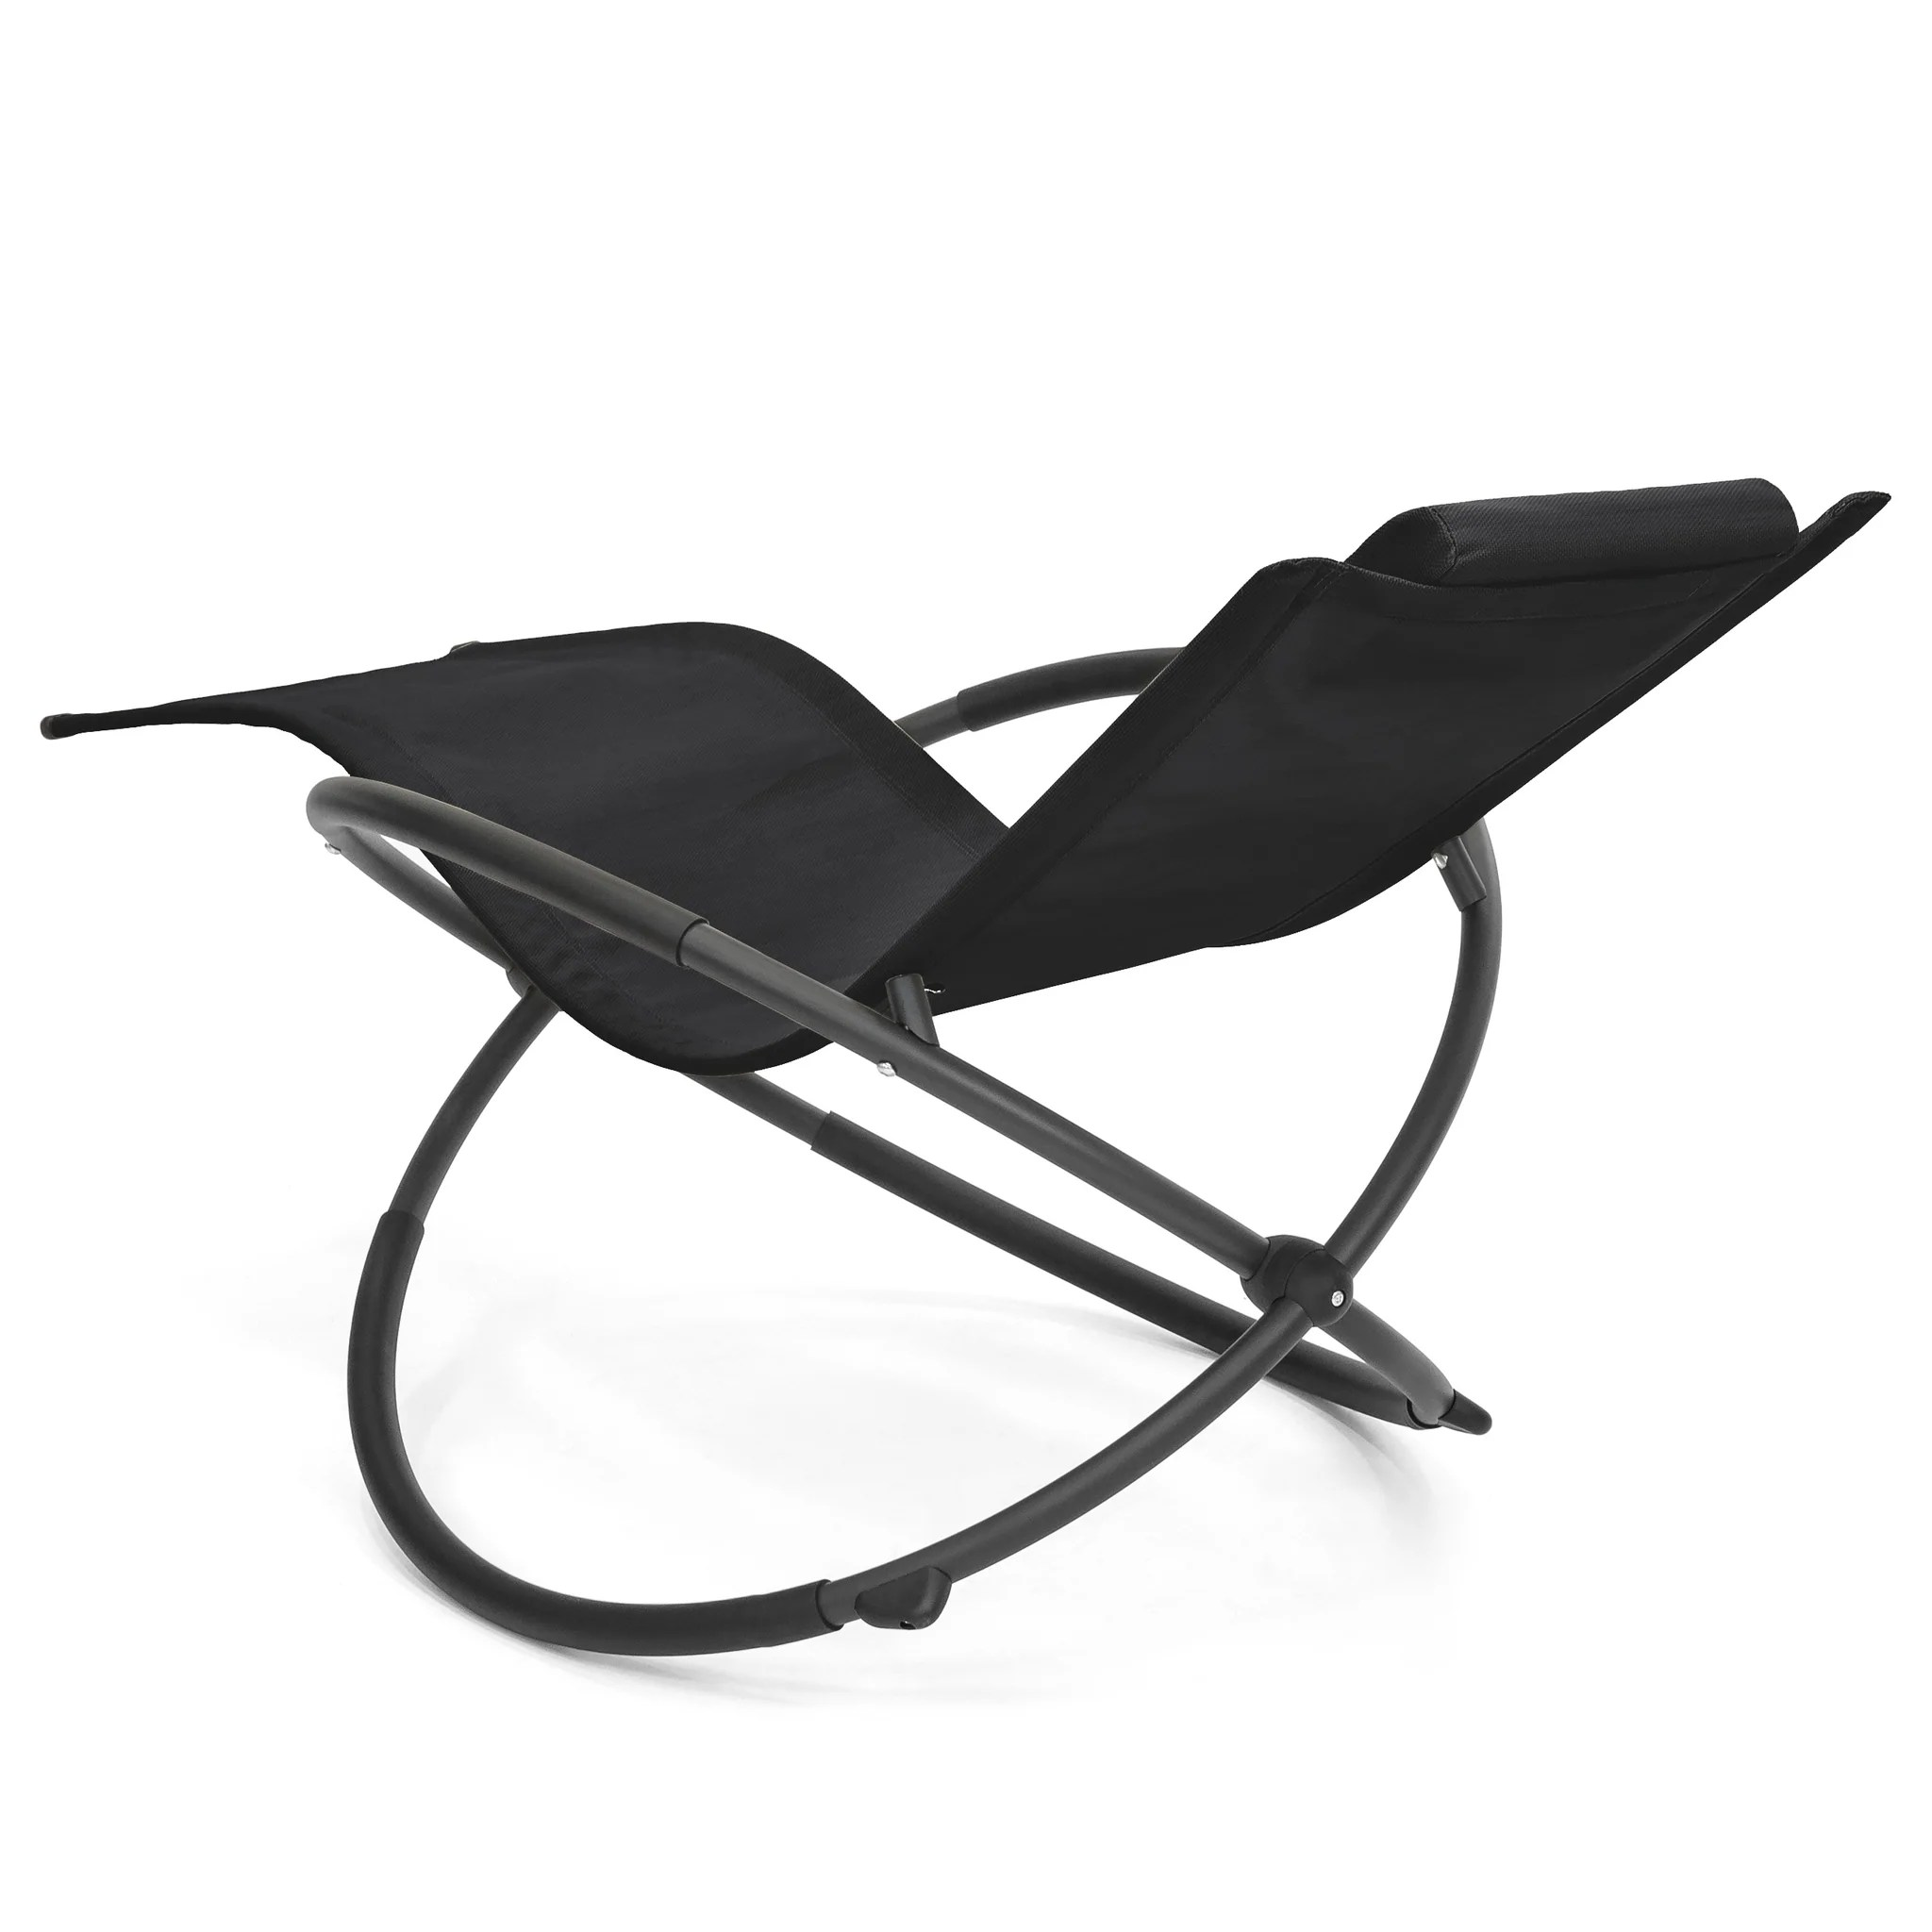 sonoma anti gravity chair review caravan sports suspension folding xl beautiful chairs rtty1